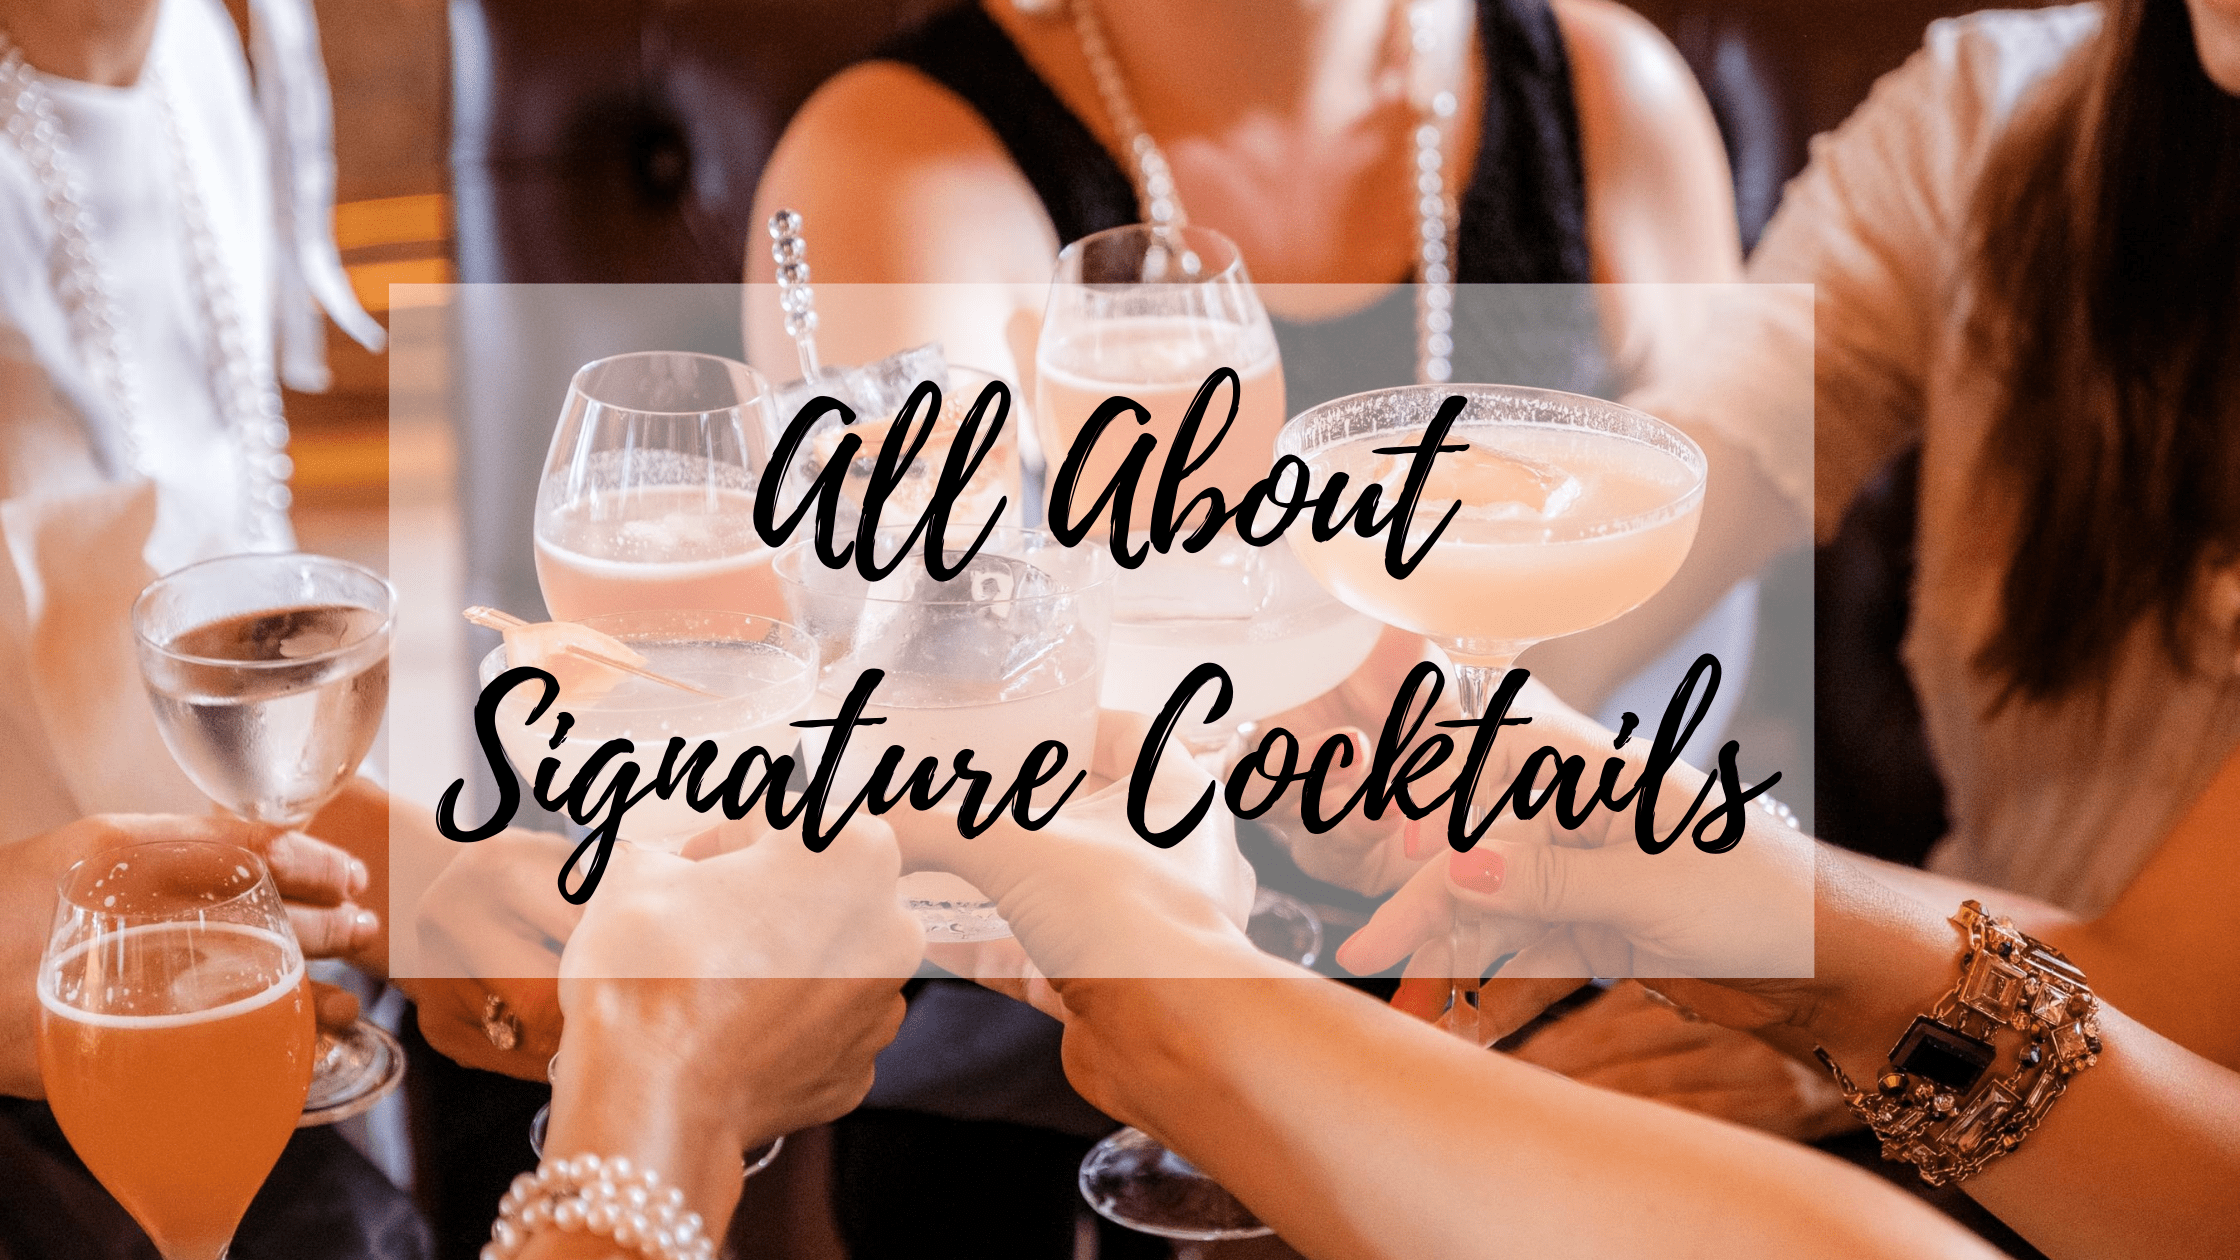 All About Signature Cocktails